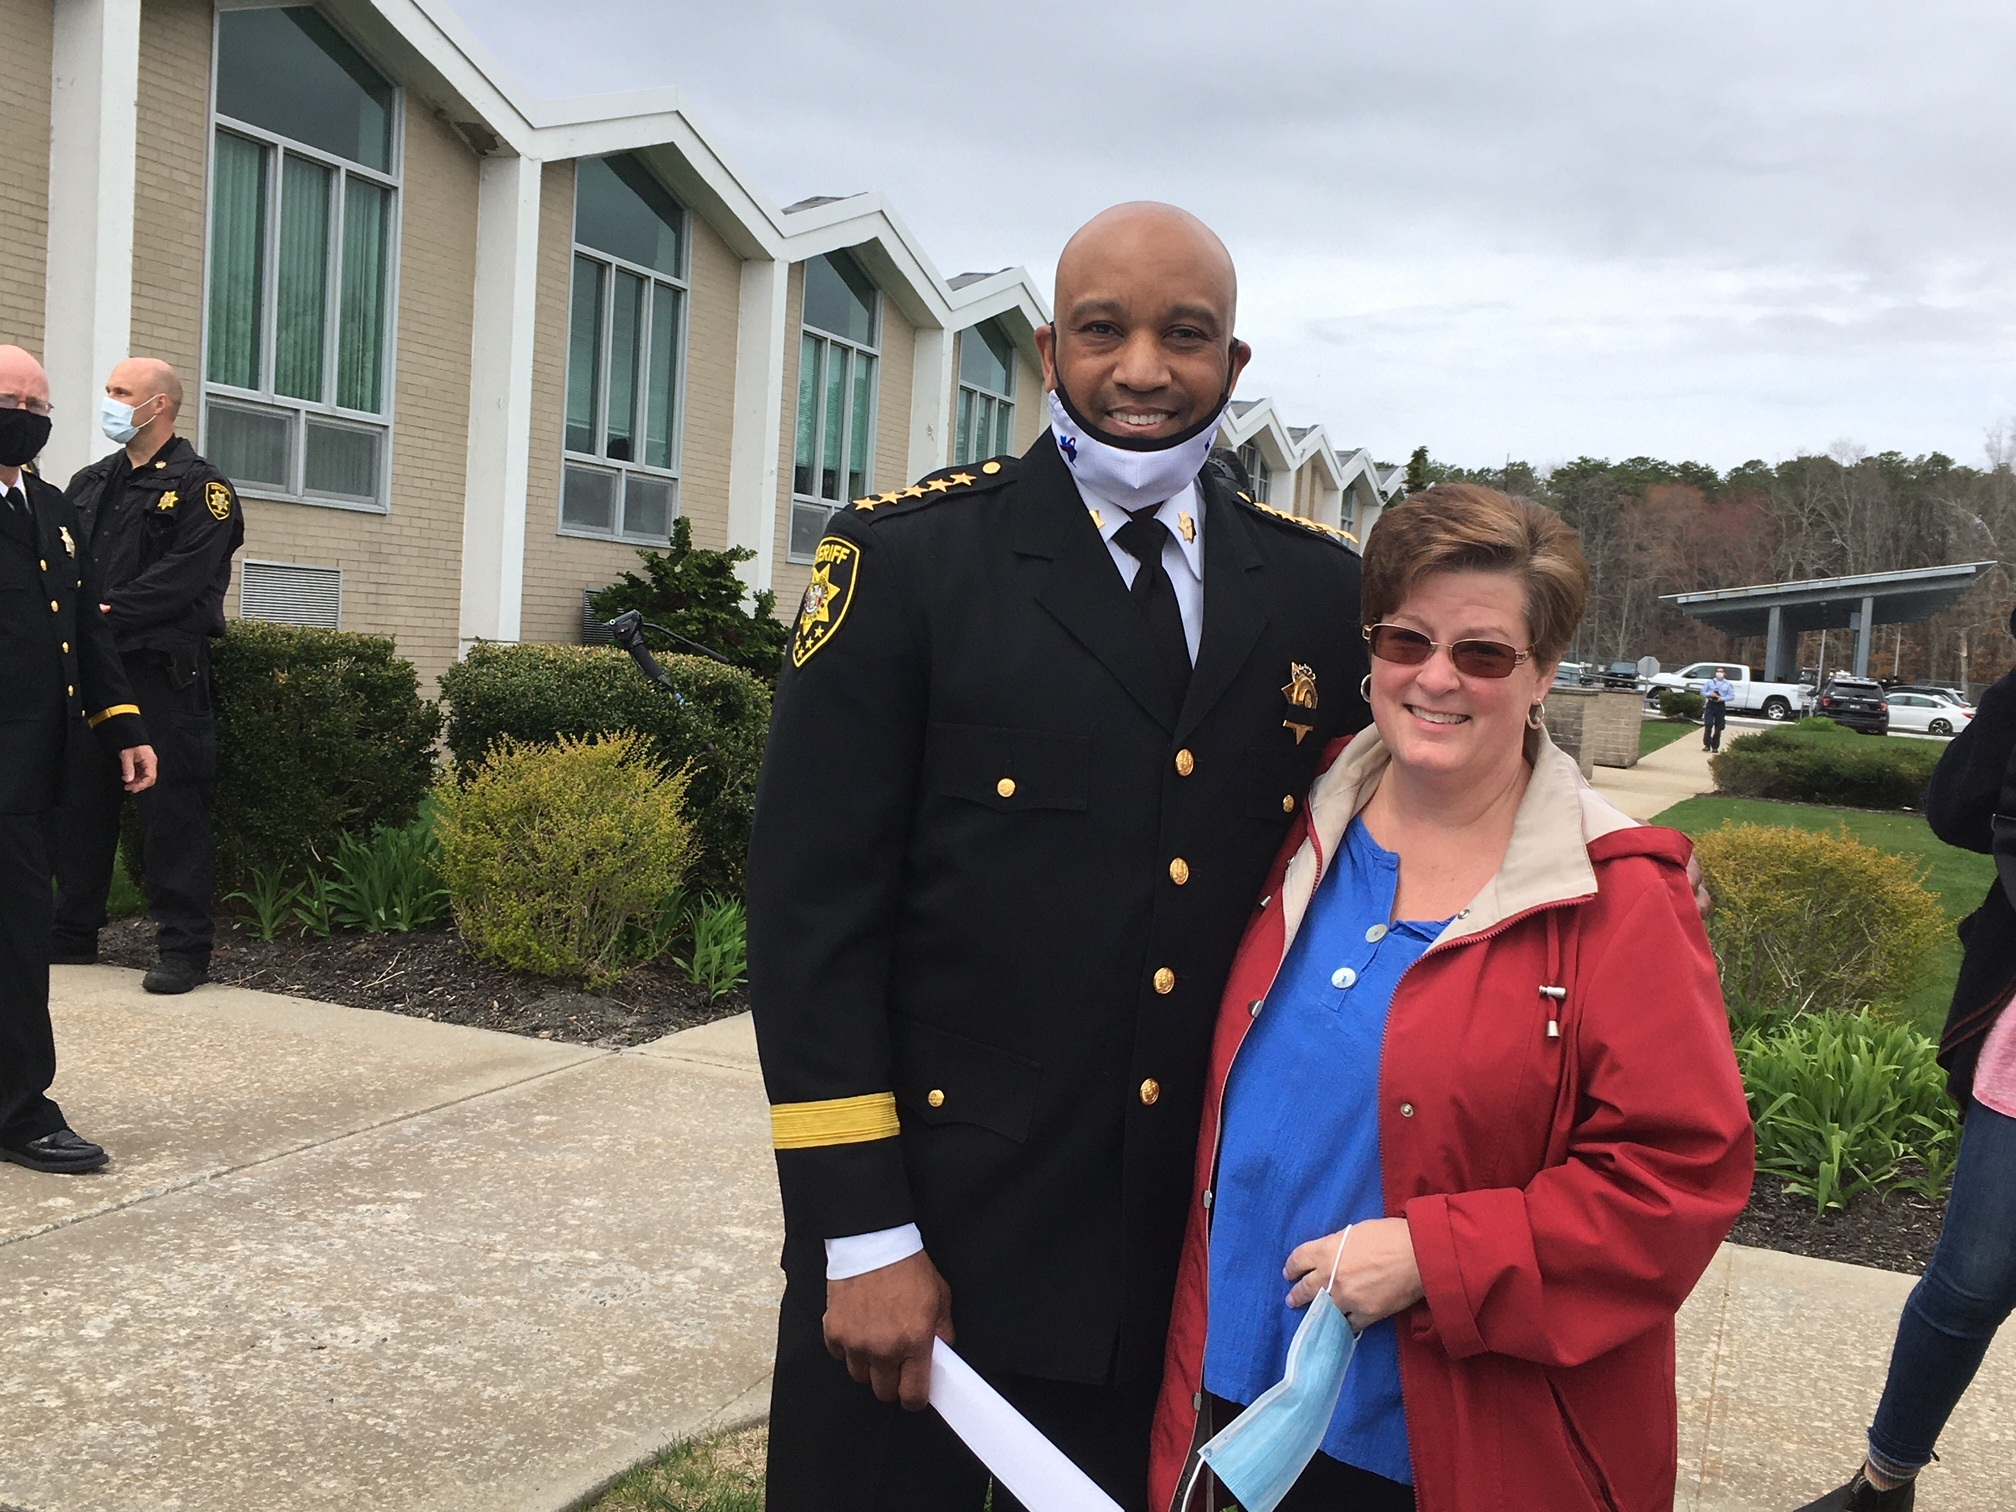 Sheriff Errol D. Toulon, Jr. with Stacey Reister